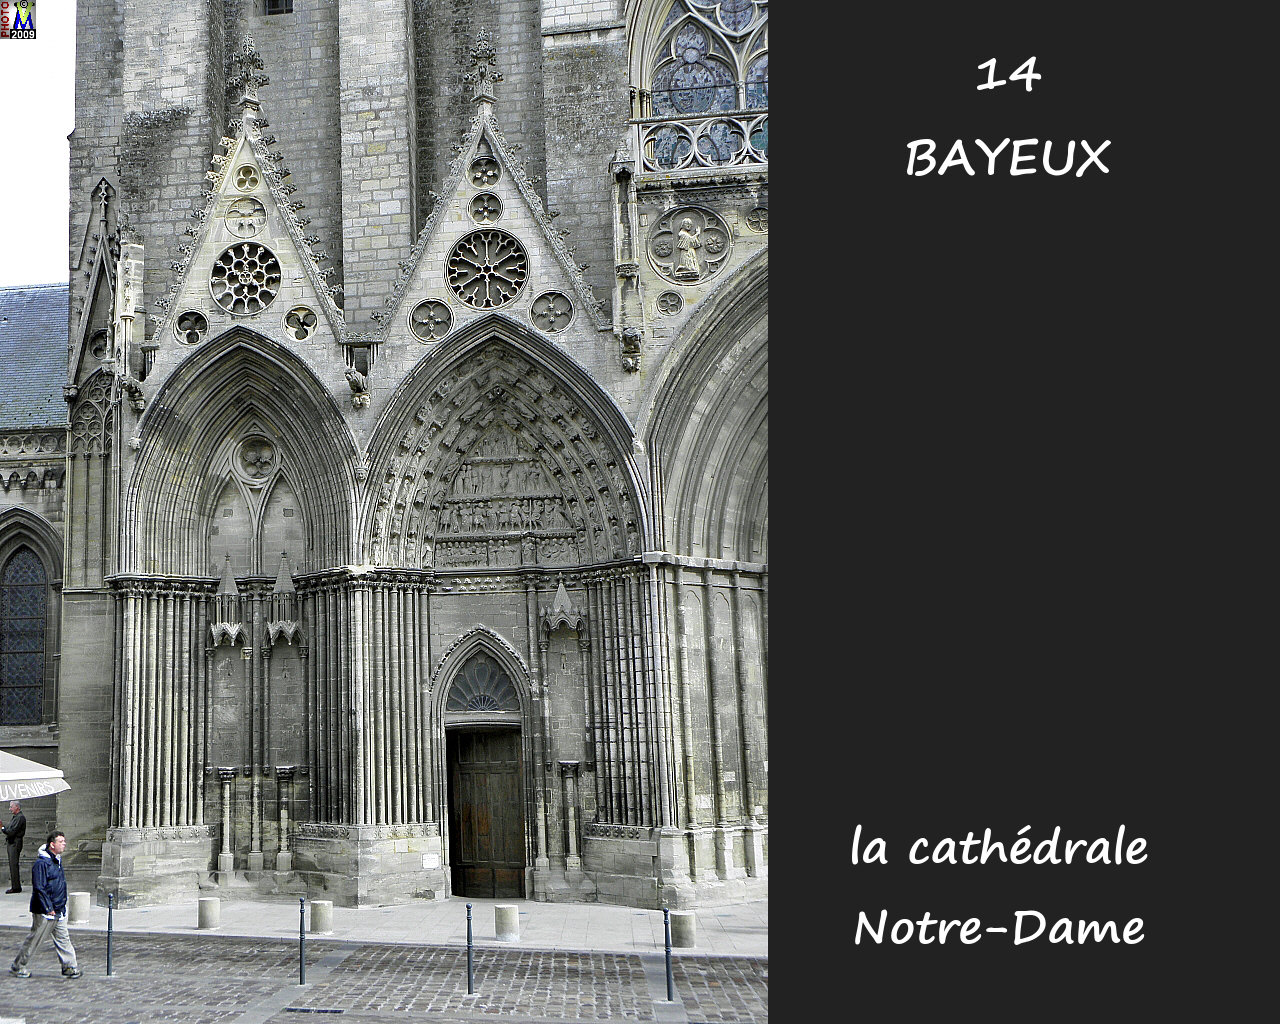 14BAYEUX_cathedrale_140.jpg